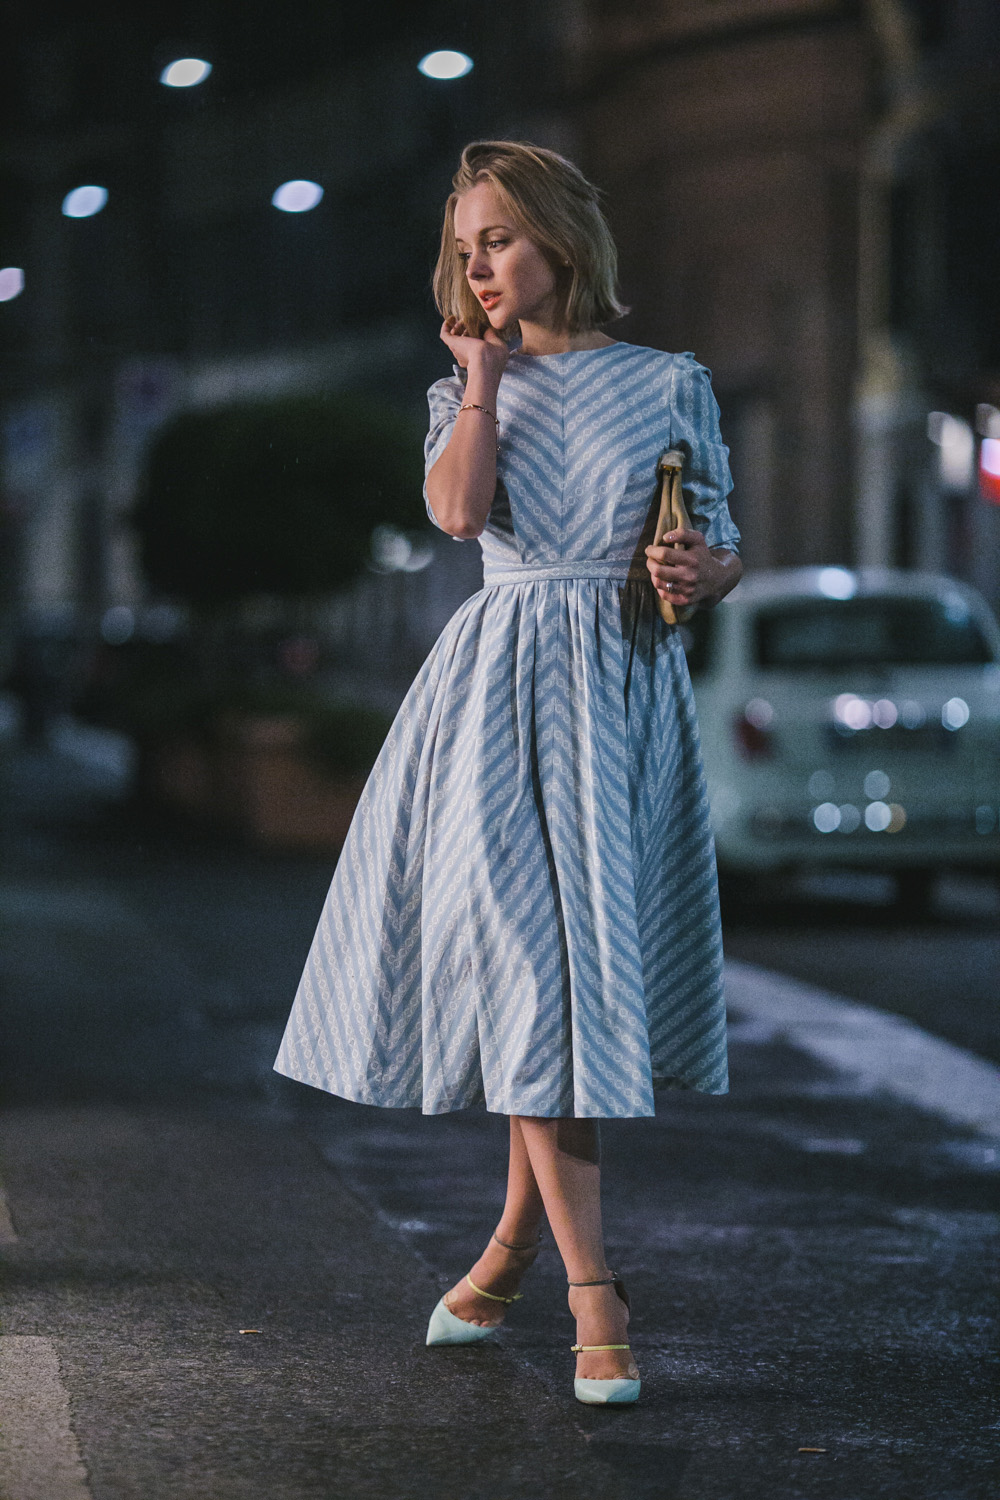 darya kamalova thecablook com russian italian fashion lifestyle blogger in milan disaronno wears versace event in segheria in rafinad dress marni clutch jimmy choo choes-4807